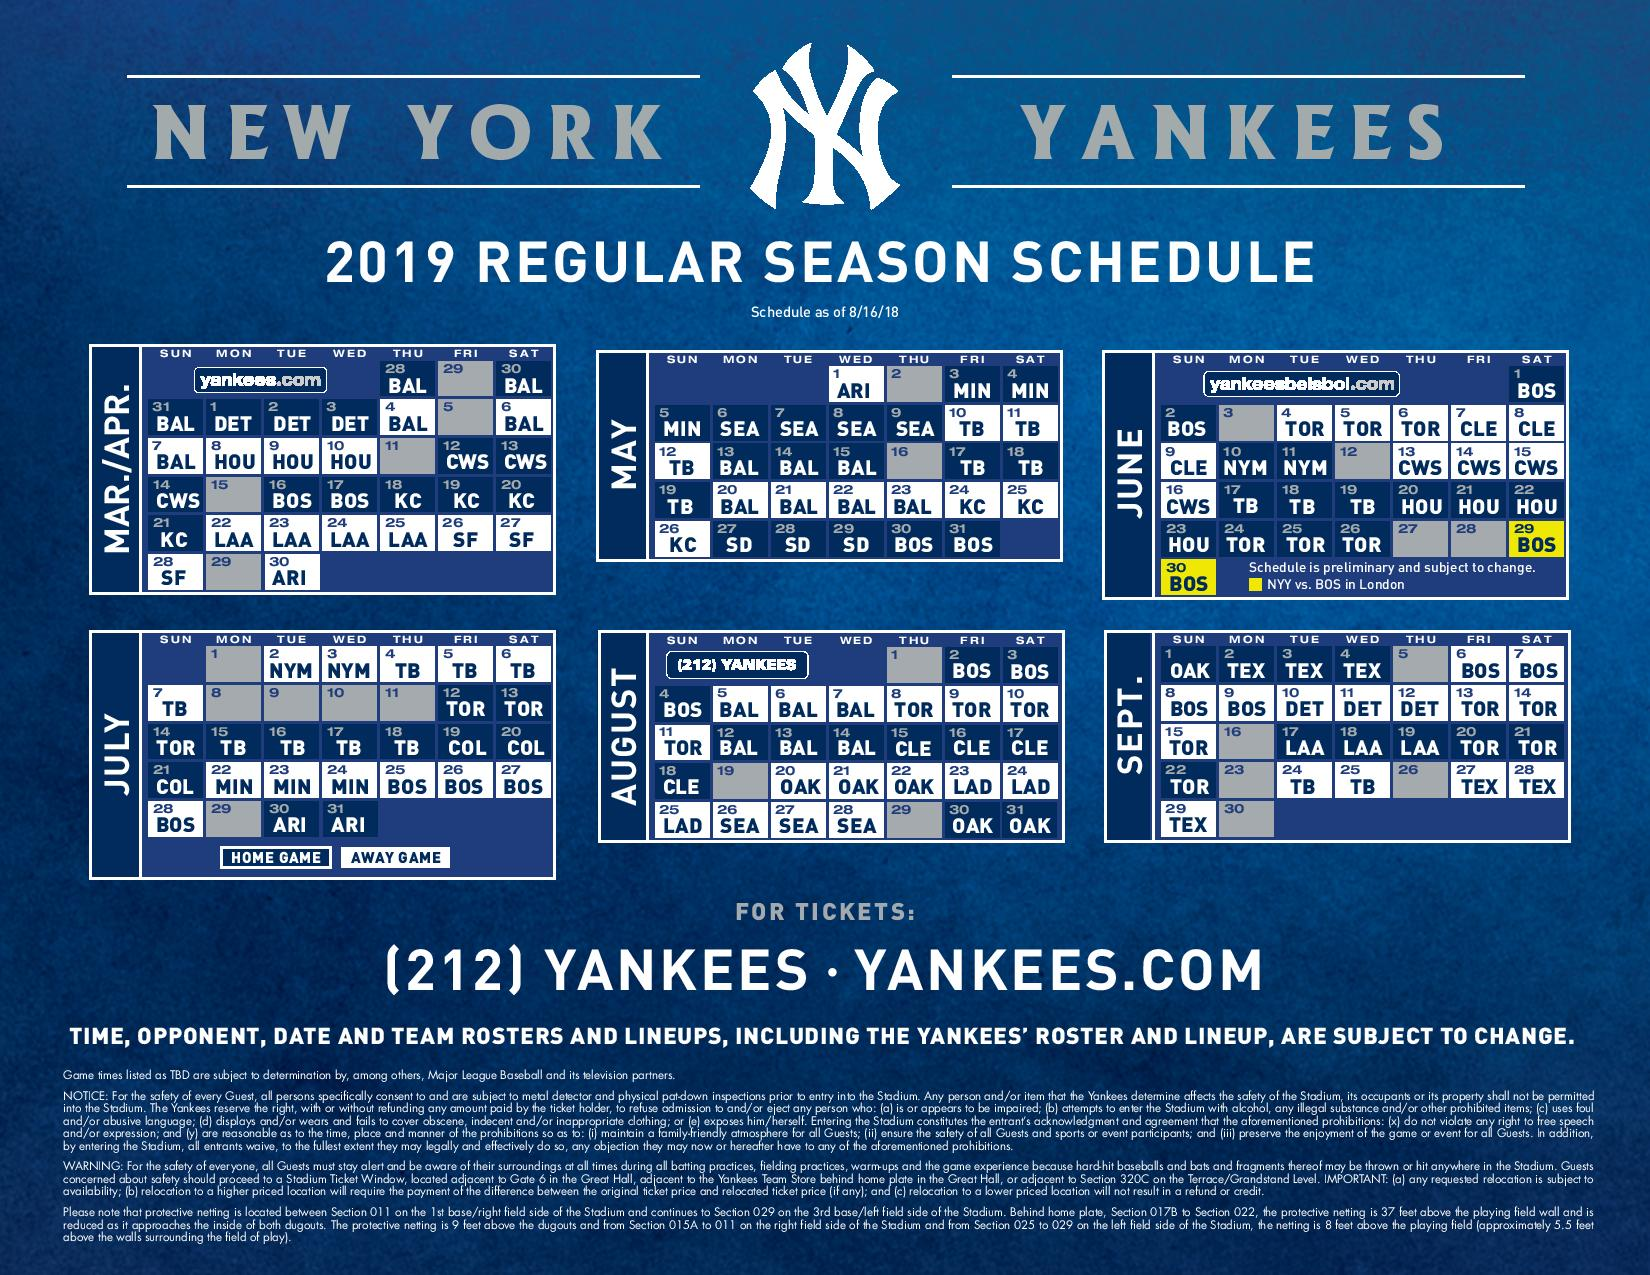 Yankee 2019 Schedule NY Yankees Baseball 2019 Schedule   Hometown 1340 AM / 105.3 FM WLVL